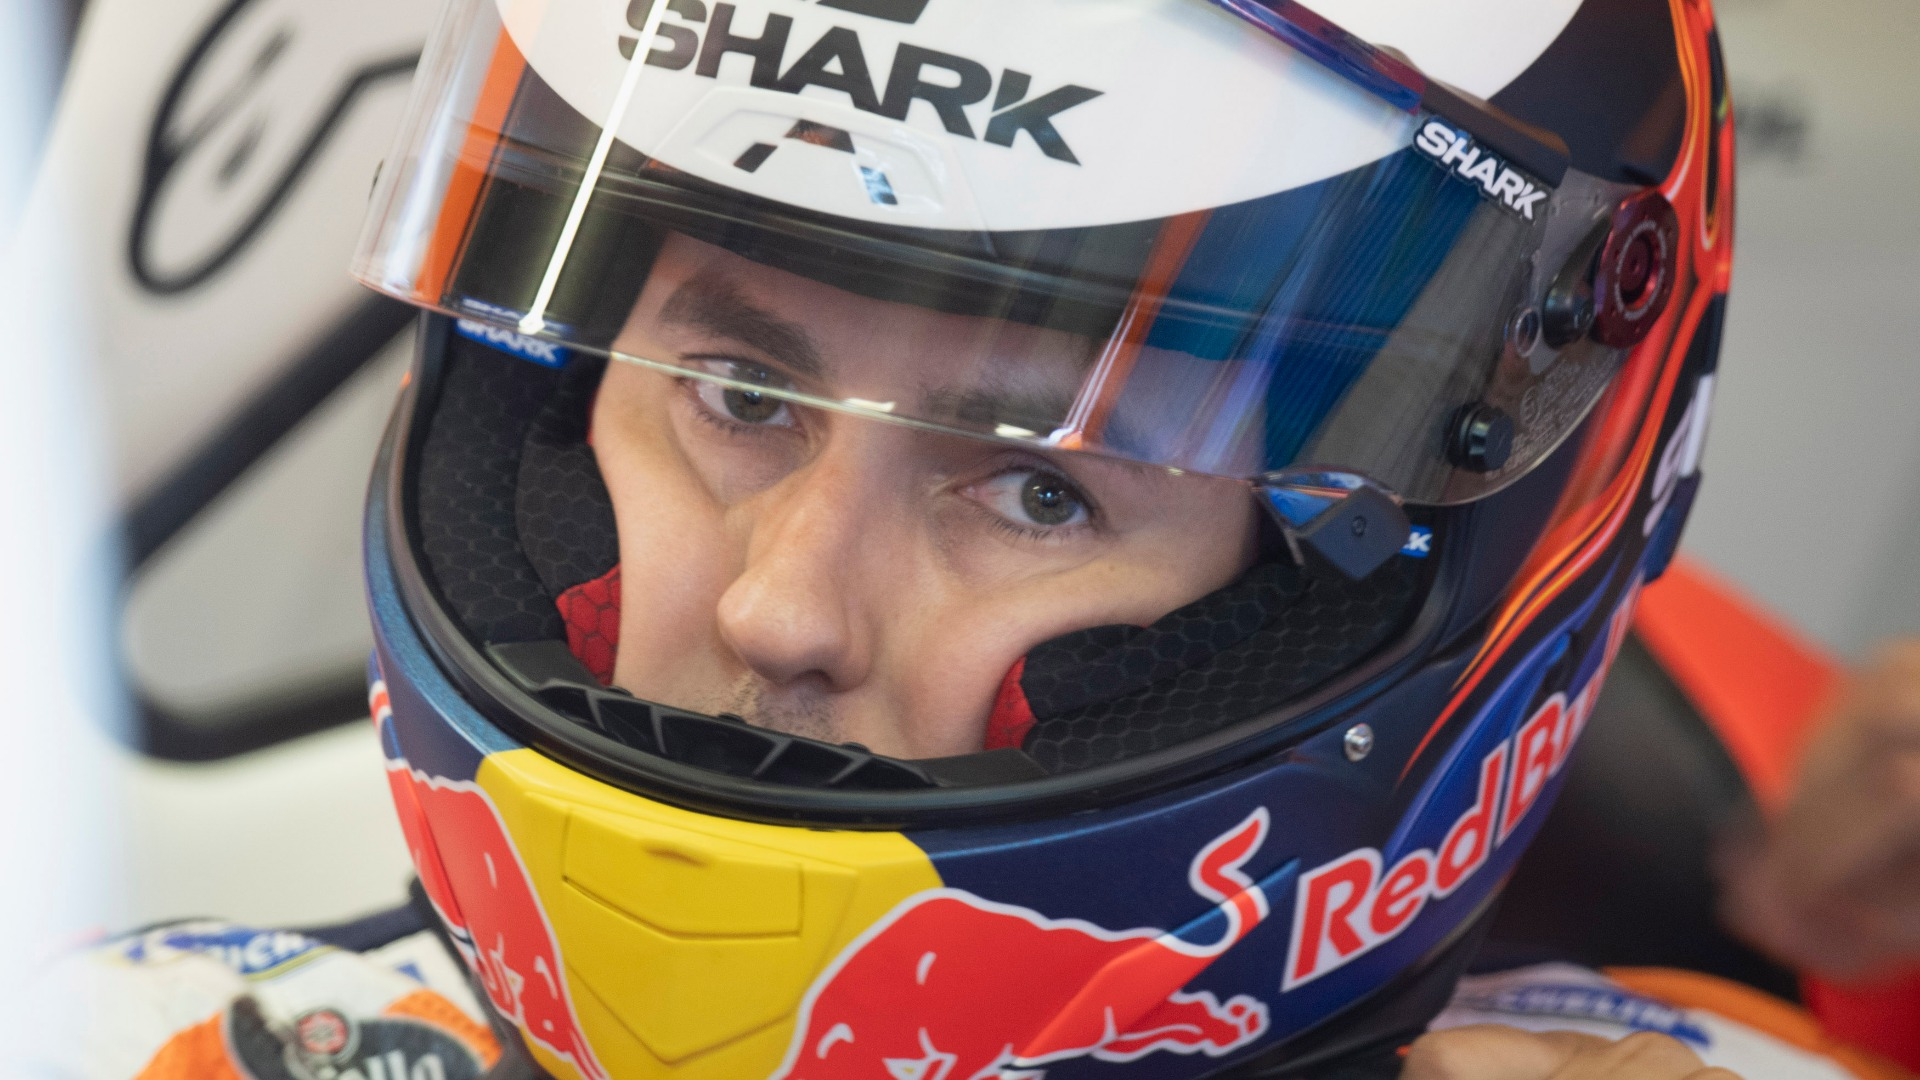 'Out of control' Lorenzo told to calm down after crash